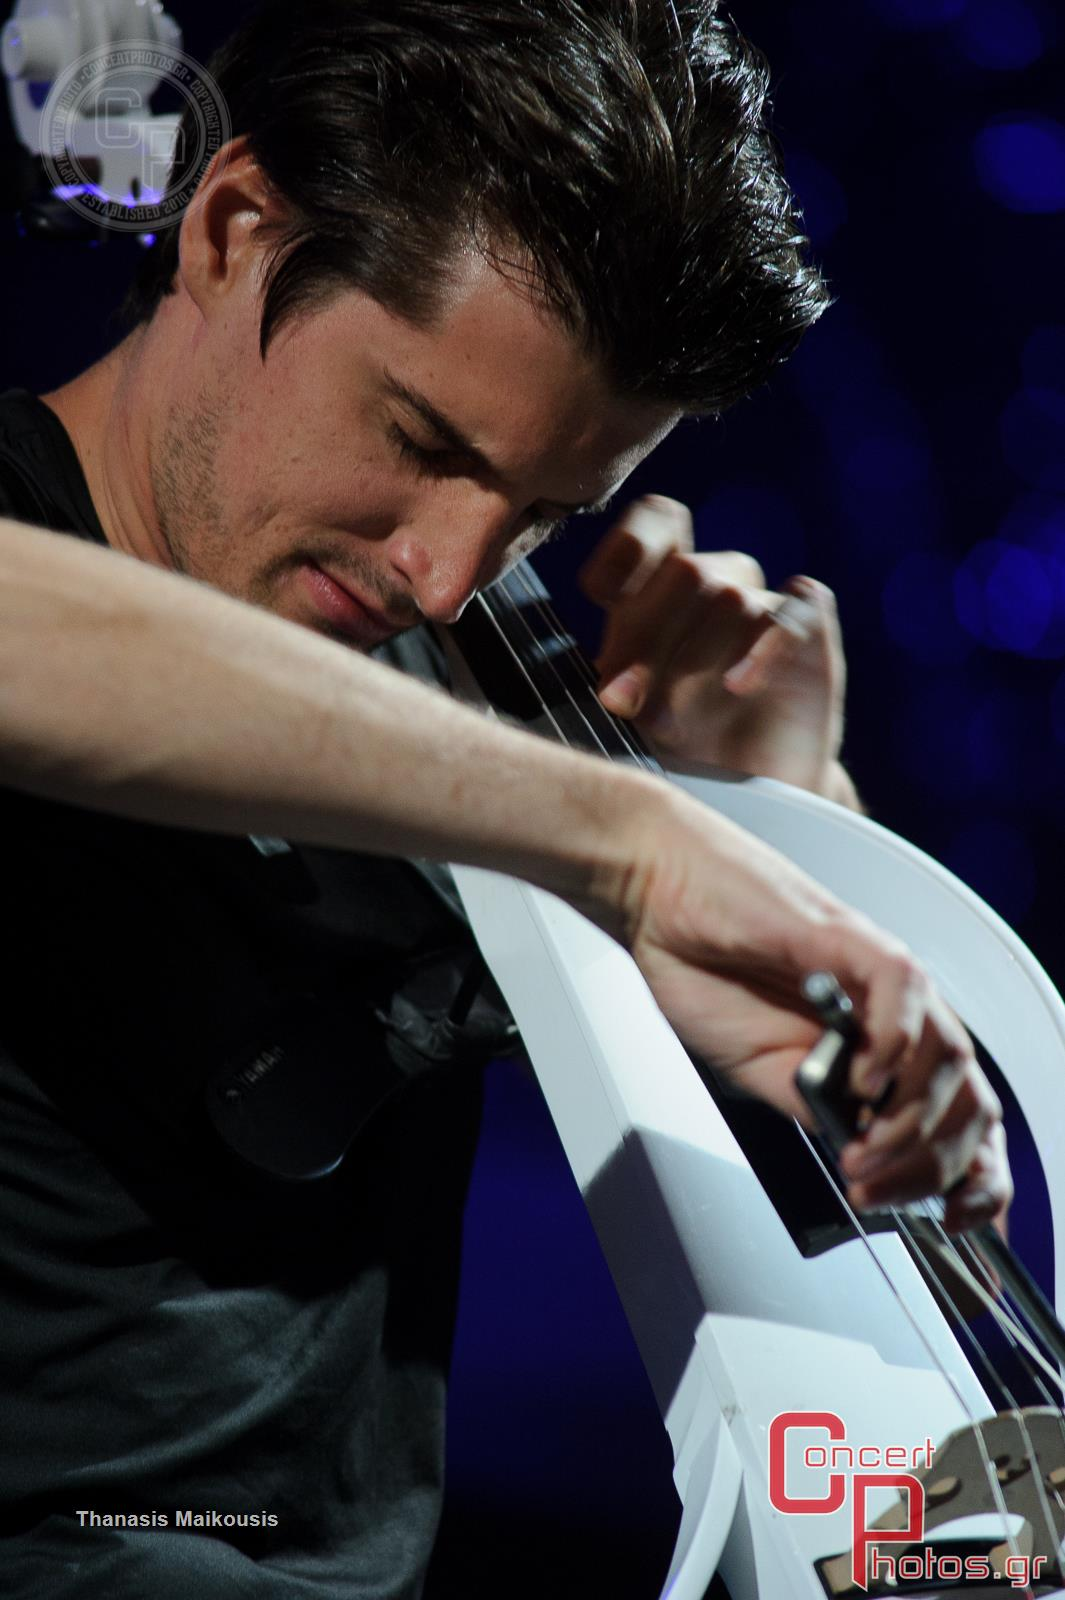 2Cellos-2Cellos Technopolis photographer: Thanasis Maikousis - untitled shoot-6095